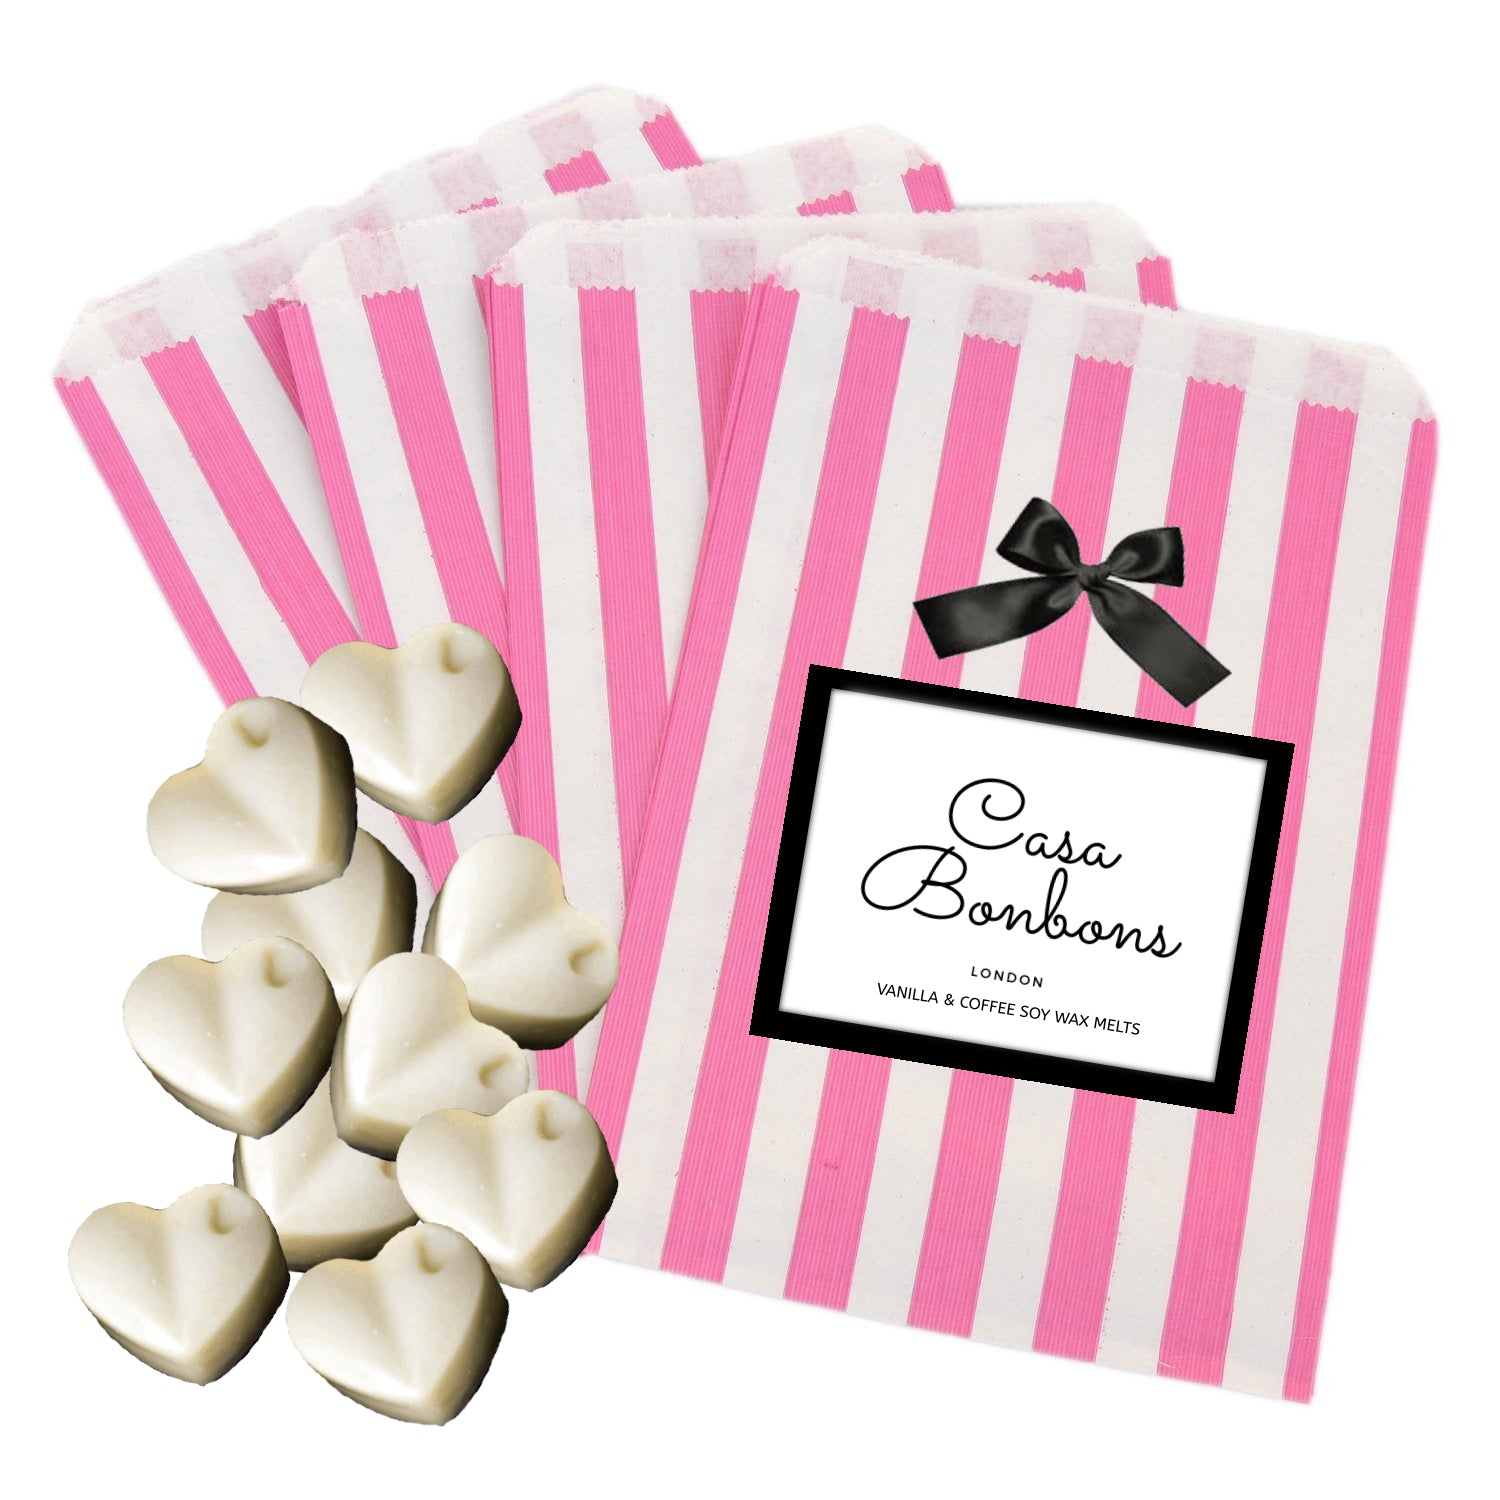 Vanilla & Coffee gentle scented Soy Wax Melts (10 hearts), PRE-ORDER delivery around 15th of December - natoorio